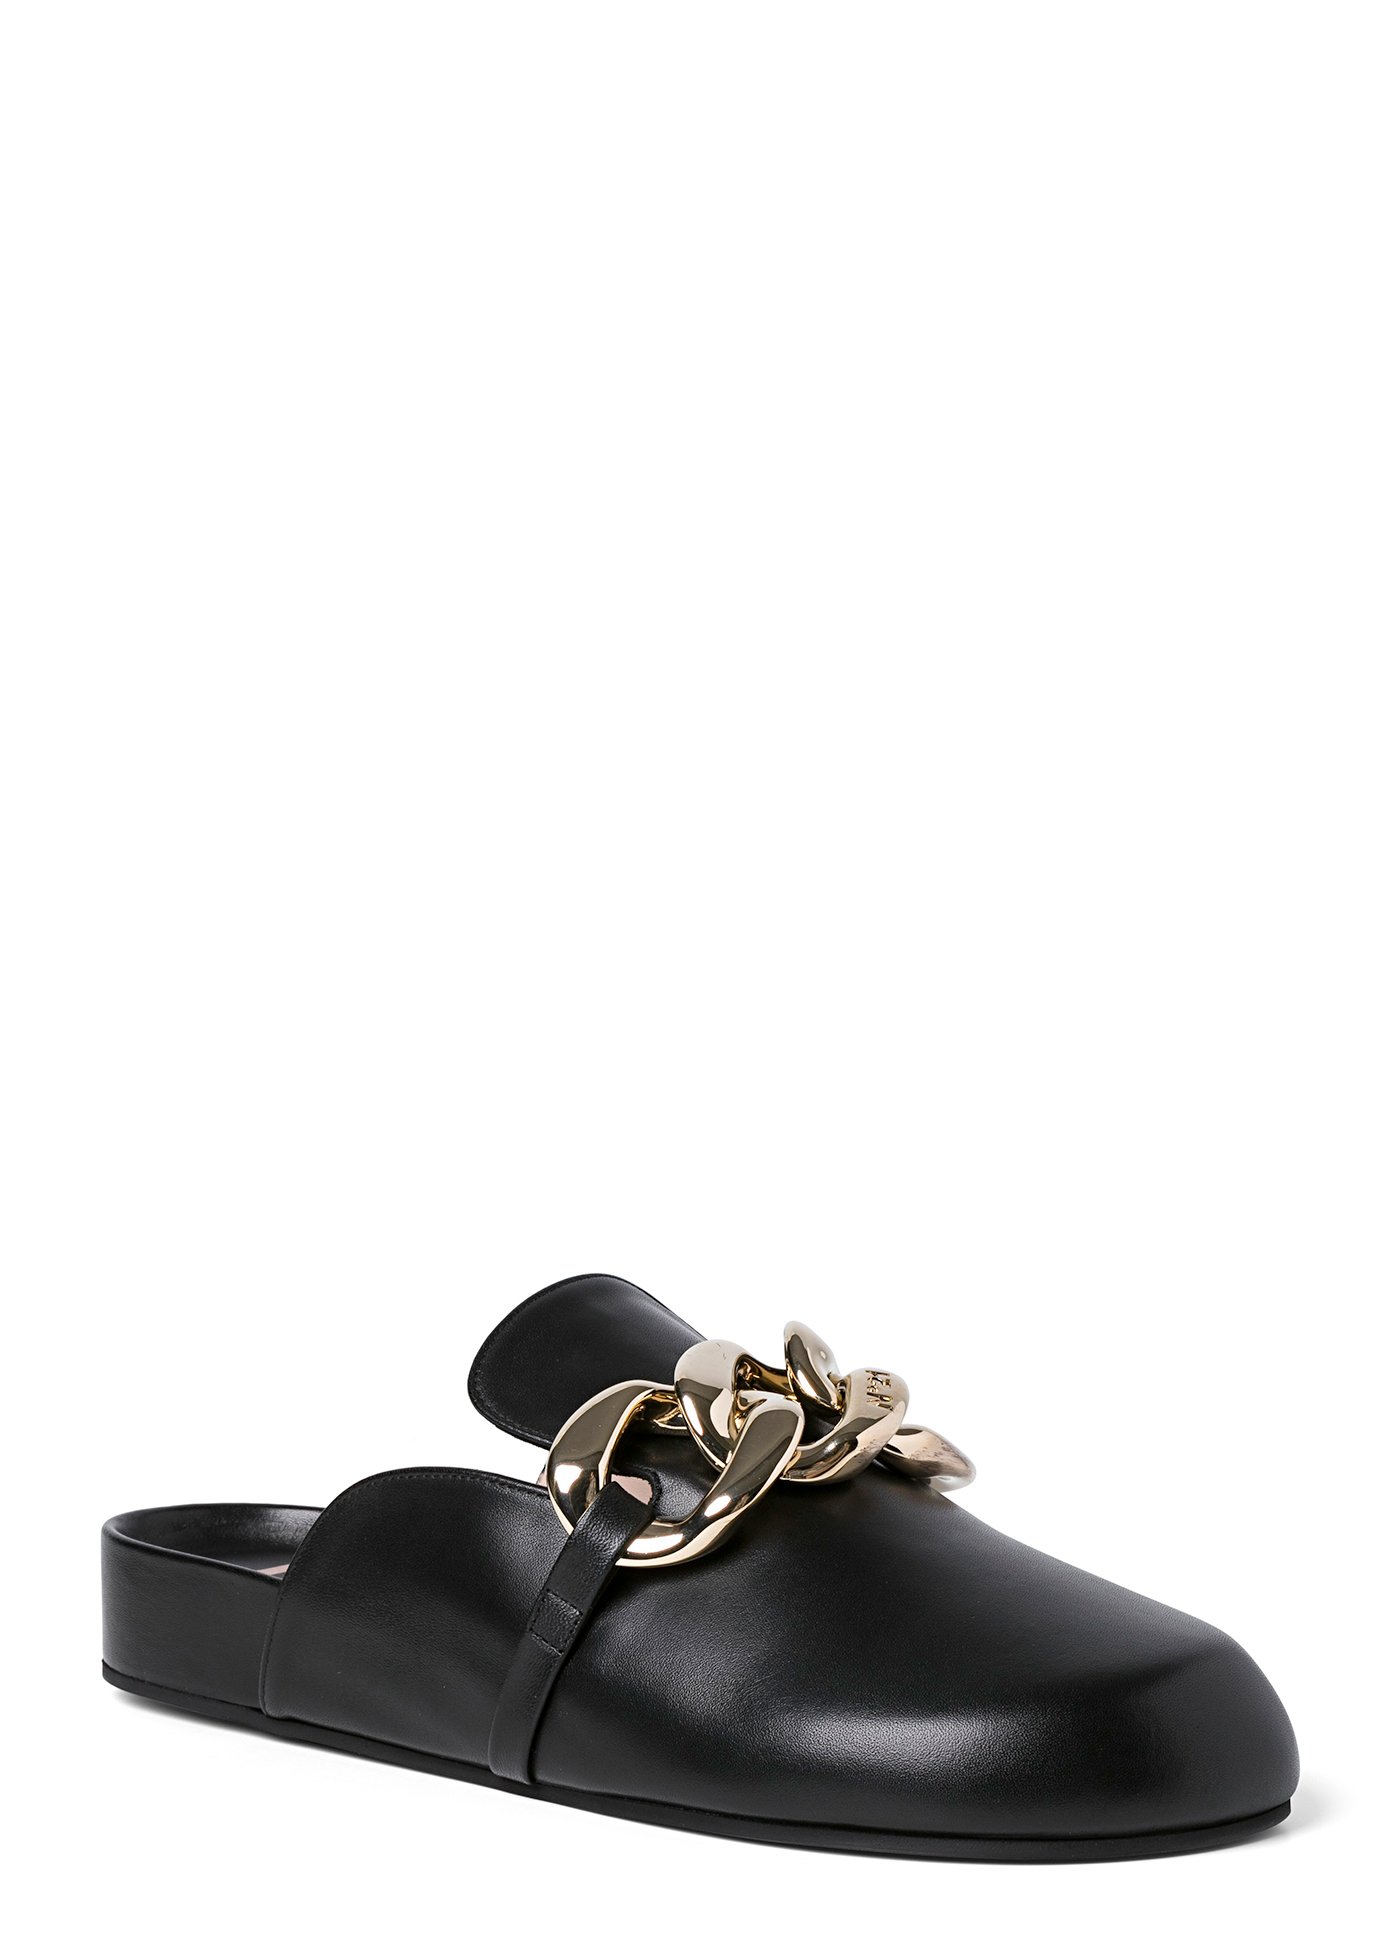 Slippers Black (Gold Chain) image number 1